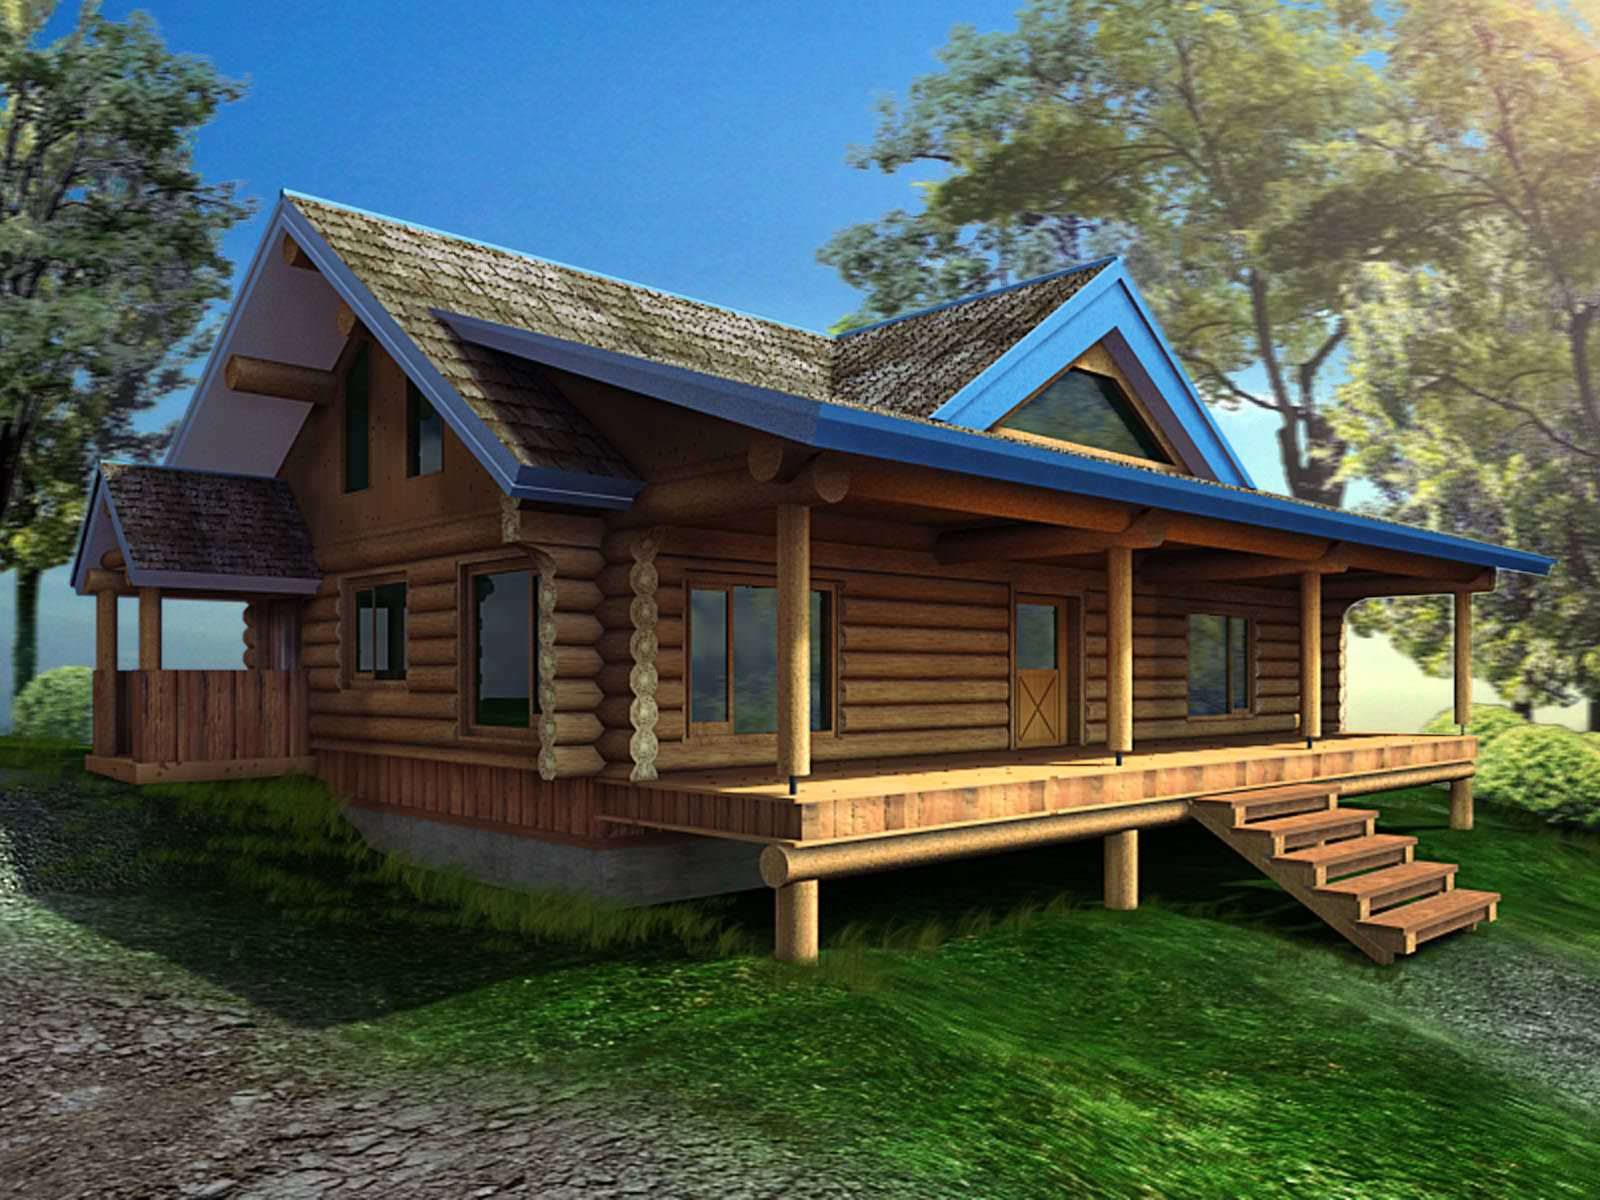 Exquisite Bungalow For Resort And Personal Use 3D Model